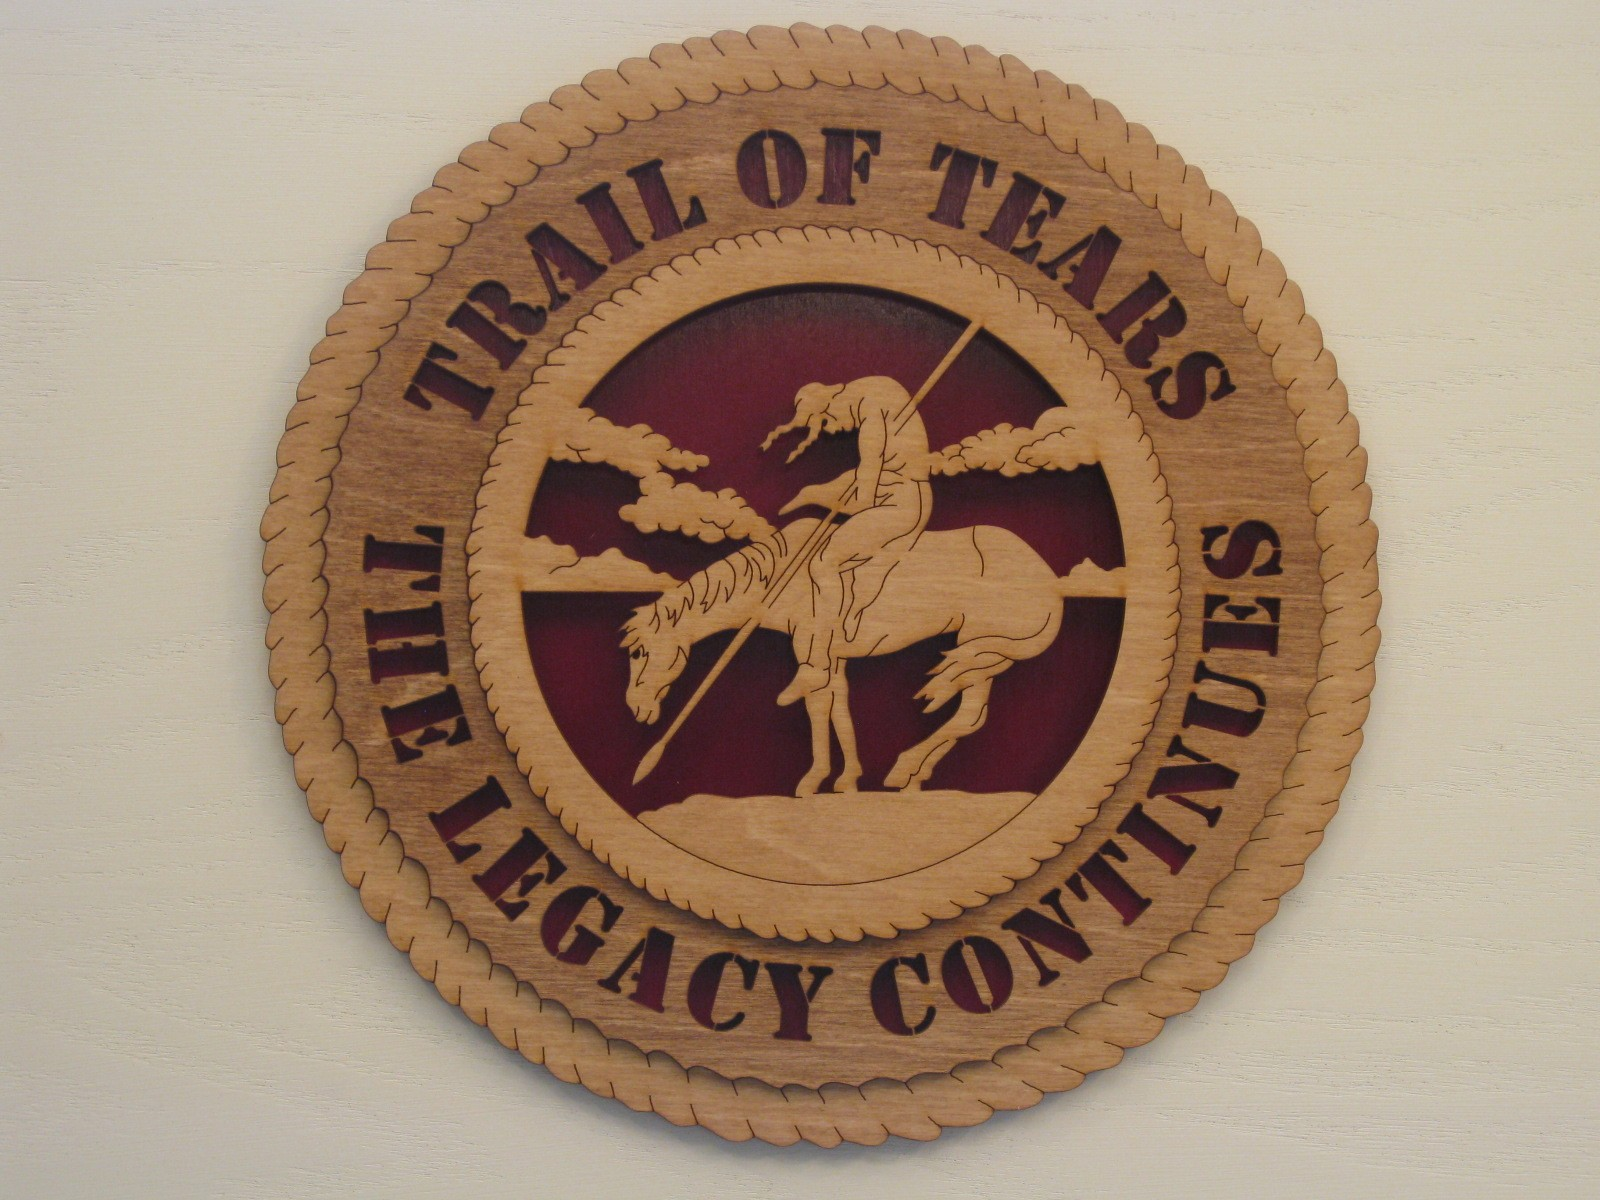 trail of tears 5 paragraph essay The lesson culminates in students writing a three-paragraph essay that explains  how  the trail of tears was the culmination of decades of disrespect and  abuse  slide 5: the cherokee nation and assimilation.